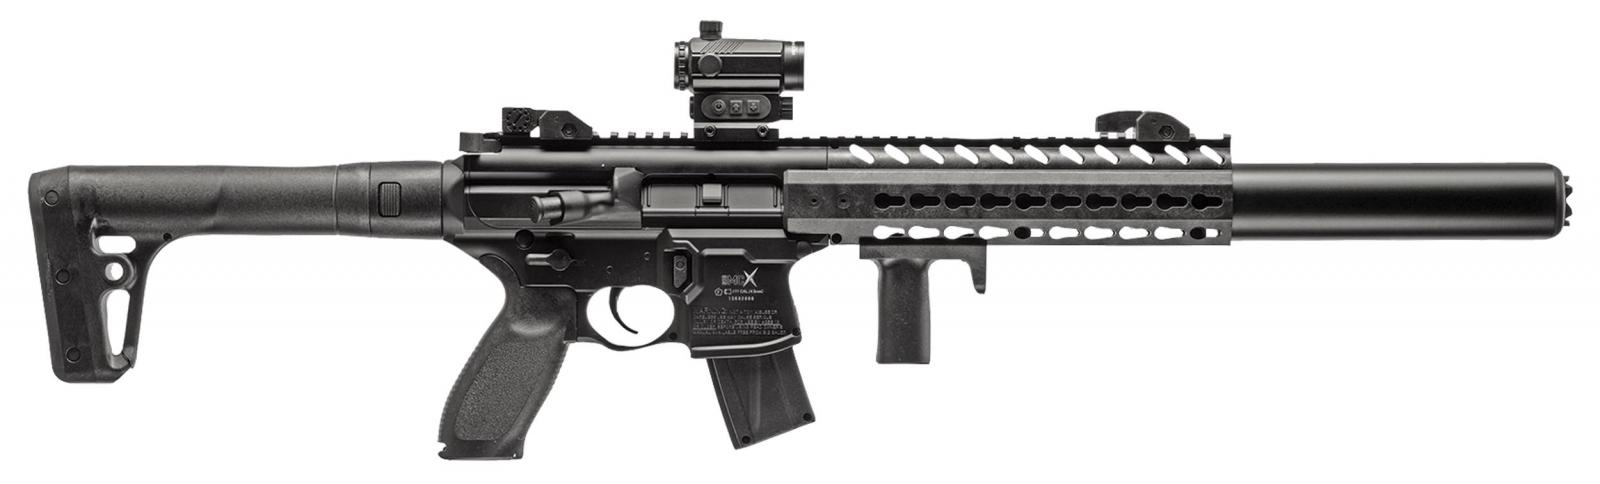 Carabine à plomb SIG SAUER MCX CO2 4.5 mm + micro Red Dot